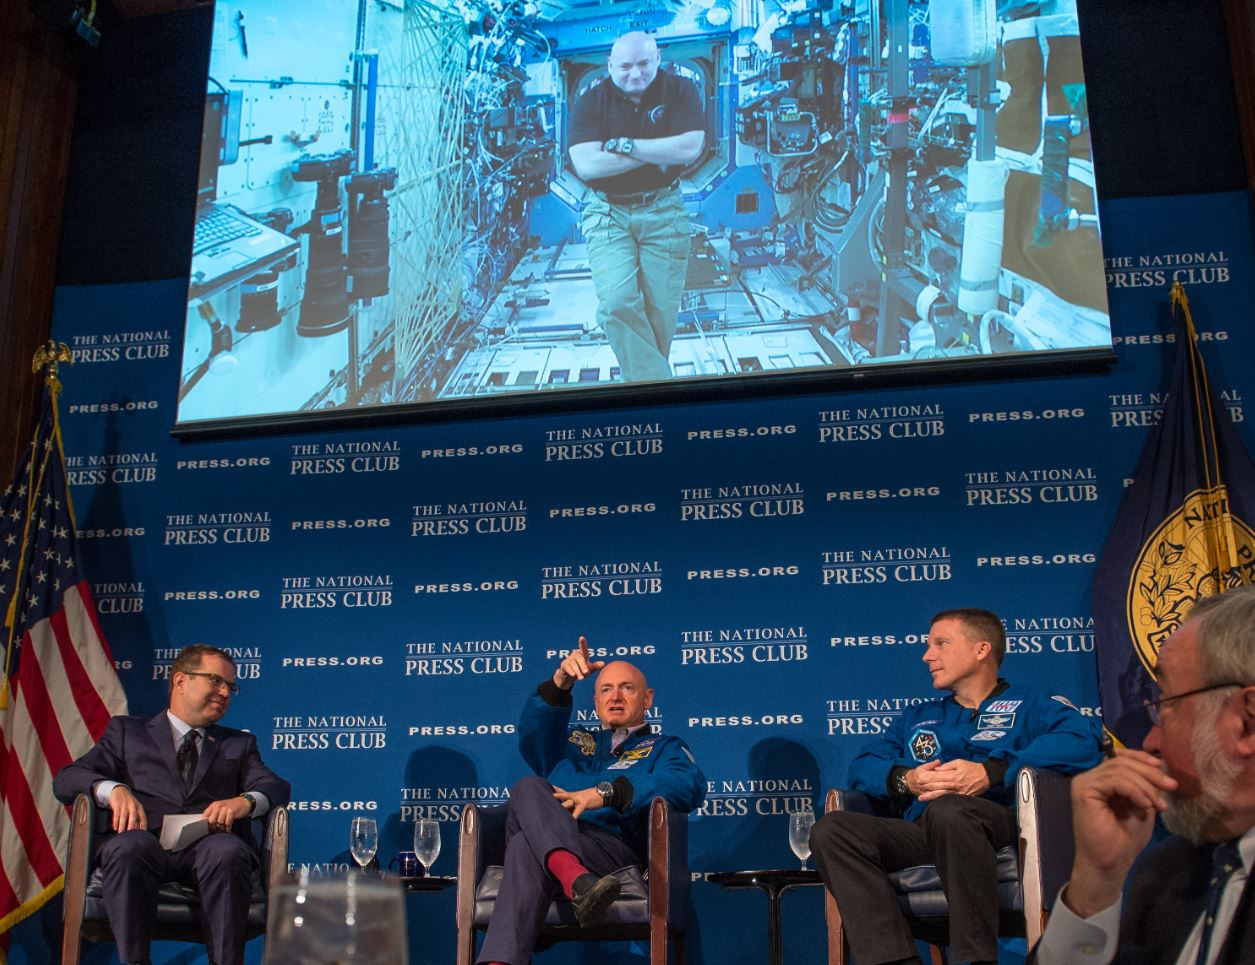 One day before astronaut Scott Kelly reaches the six-month mark in space, he talks live from onboard the ISS with John Hughs, left, his twin brother Mark Kelly and Astronaut Terry Virts, right. - Image Credit:  NASA/Bill Ingalls